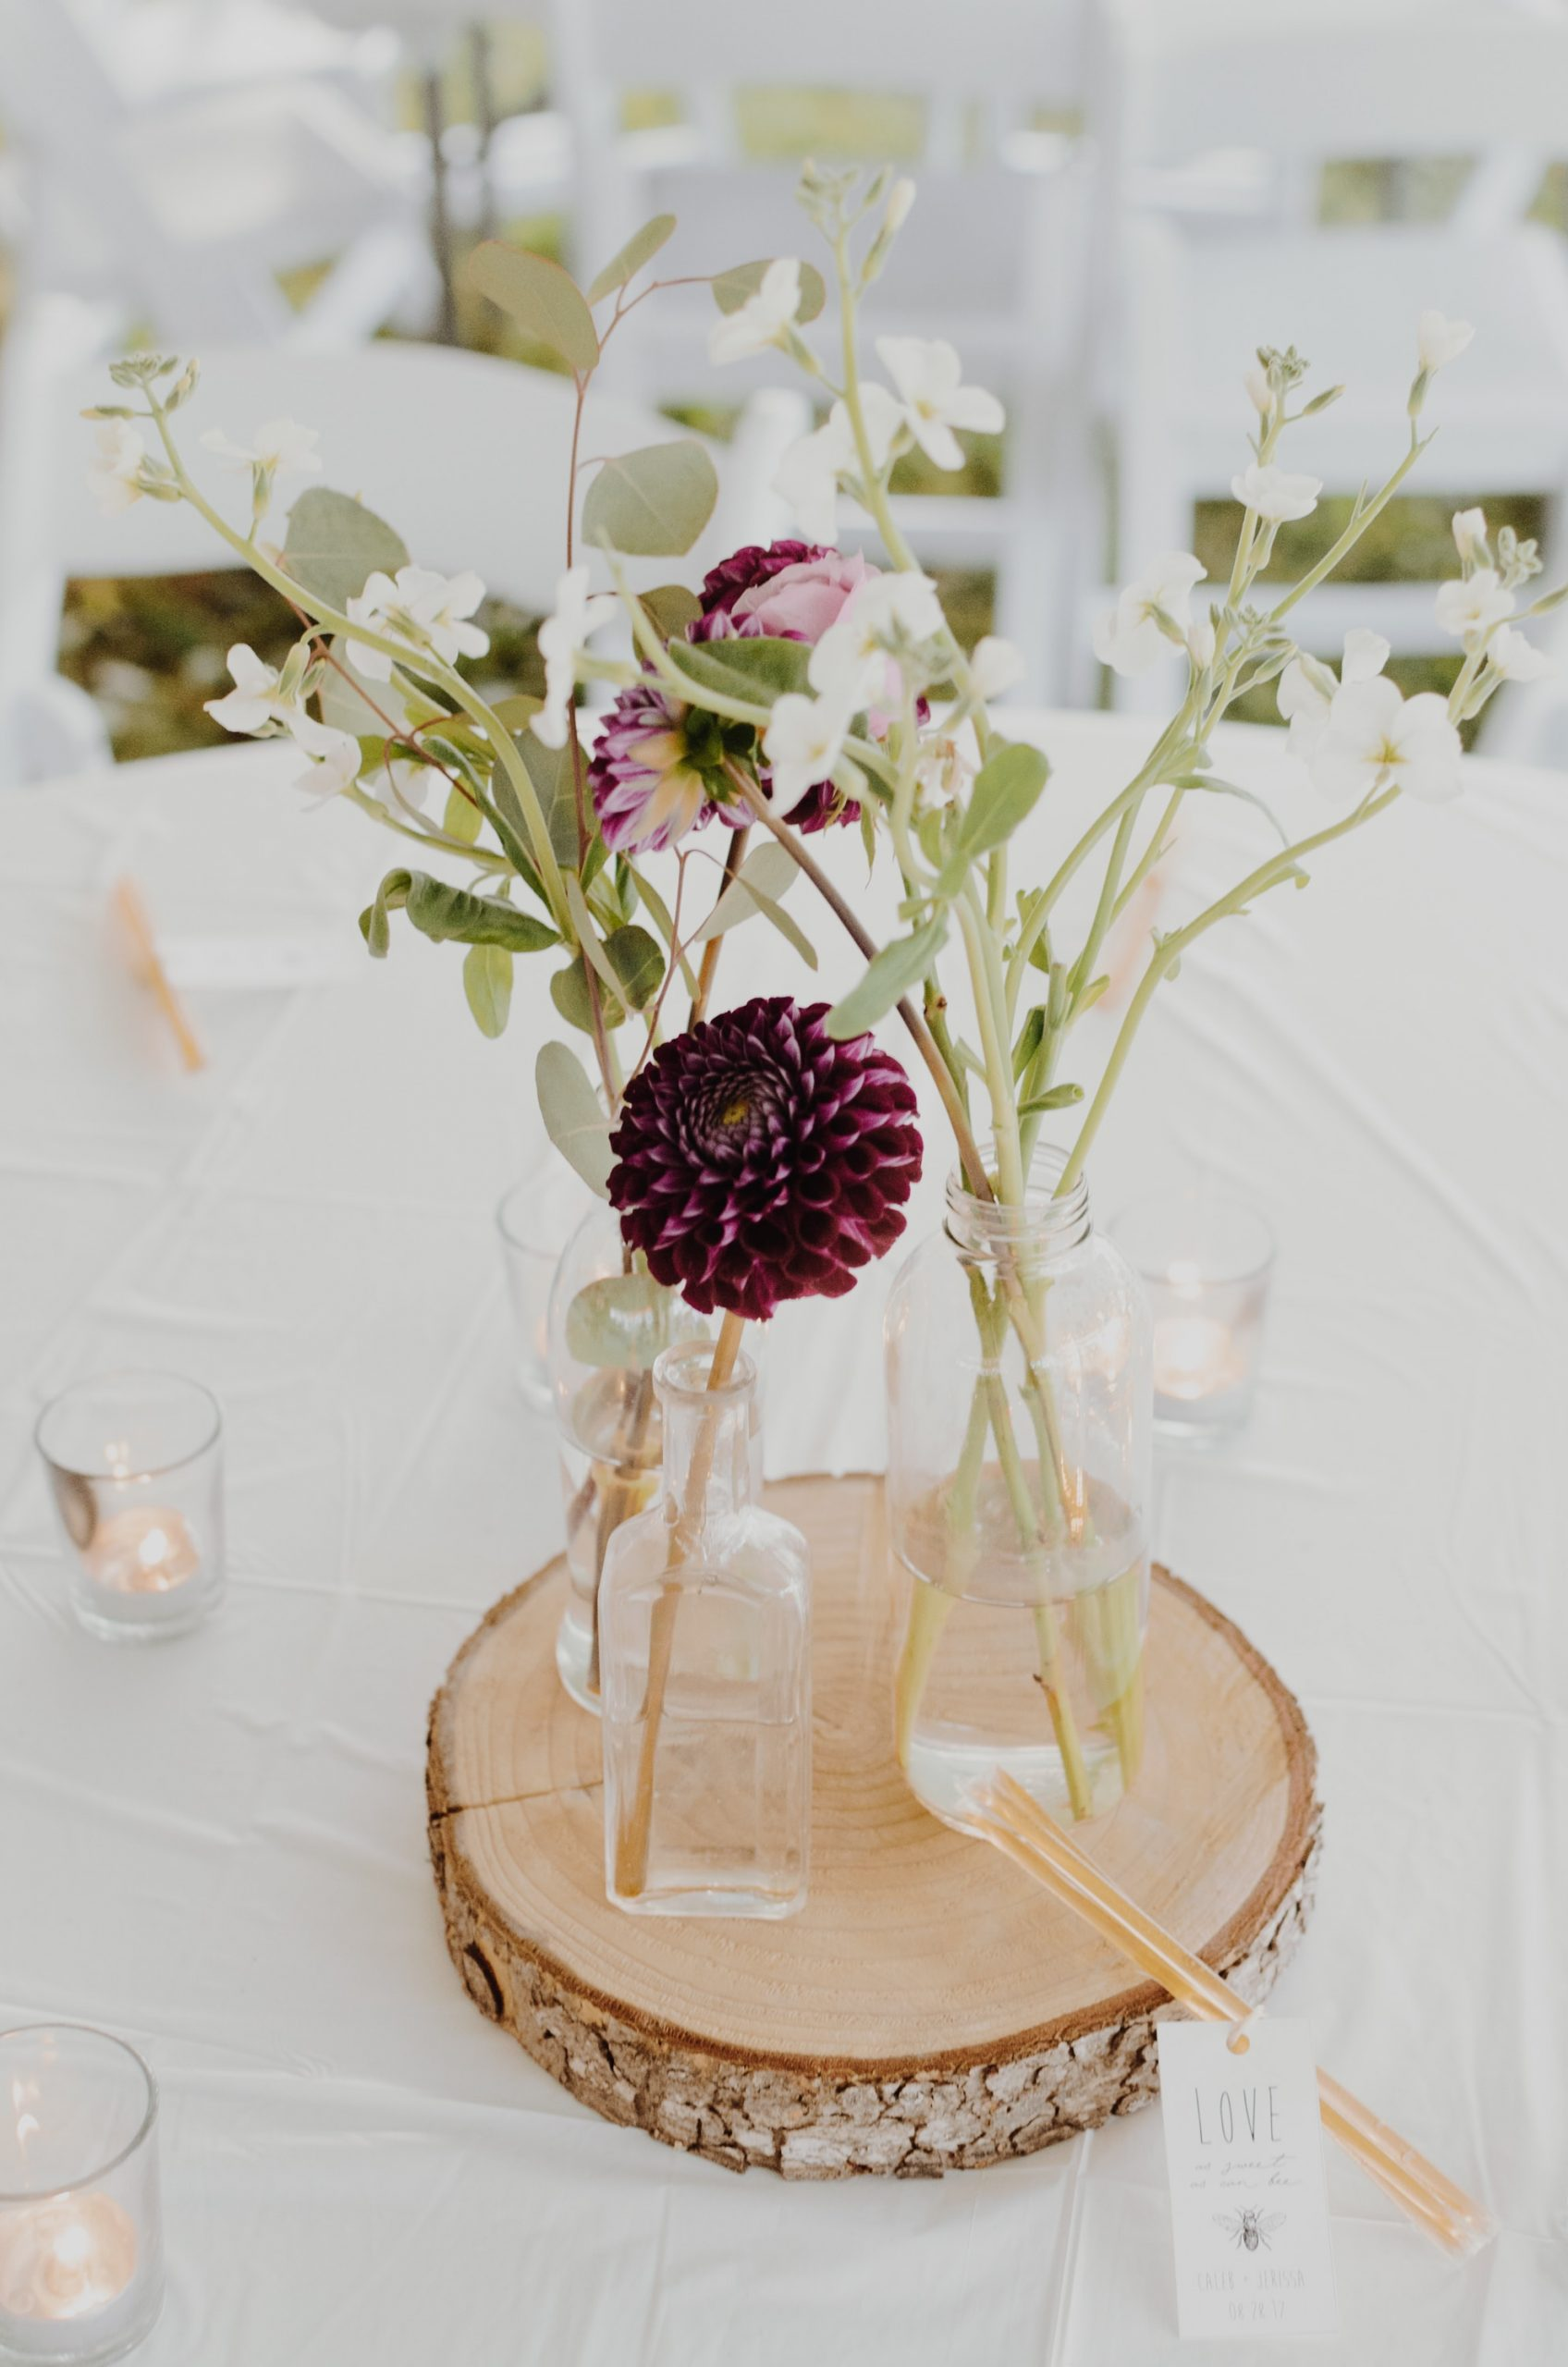 Whimiscal centerpieces